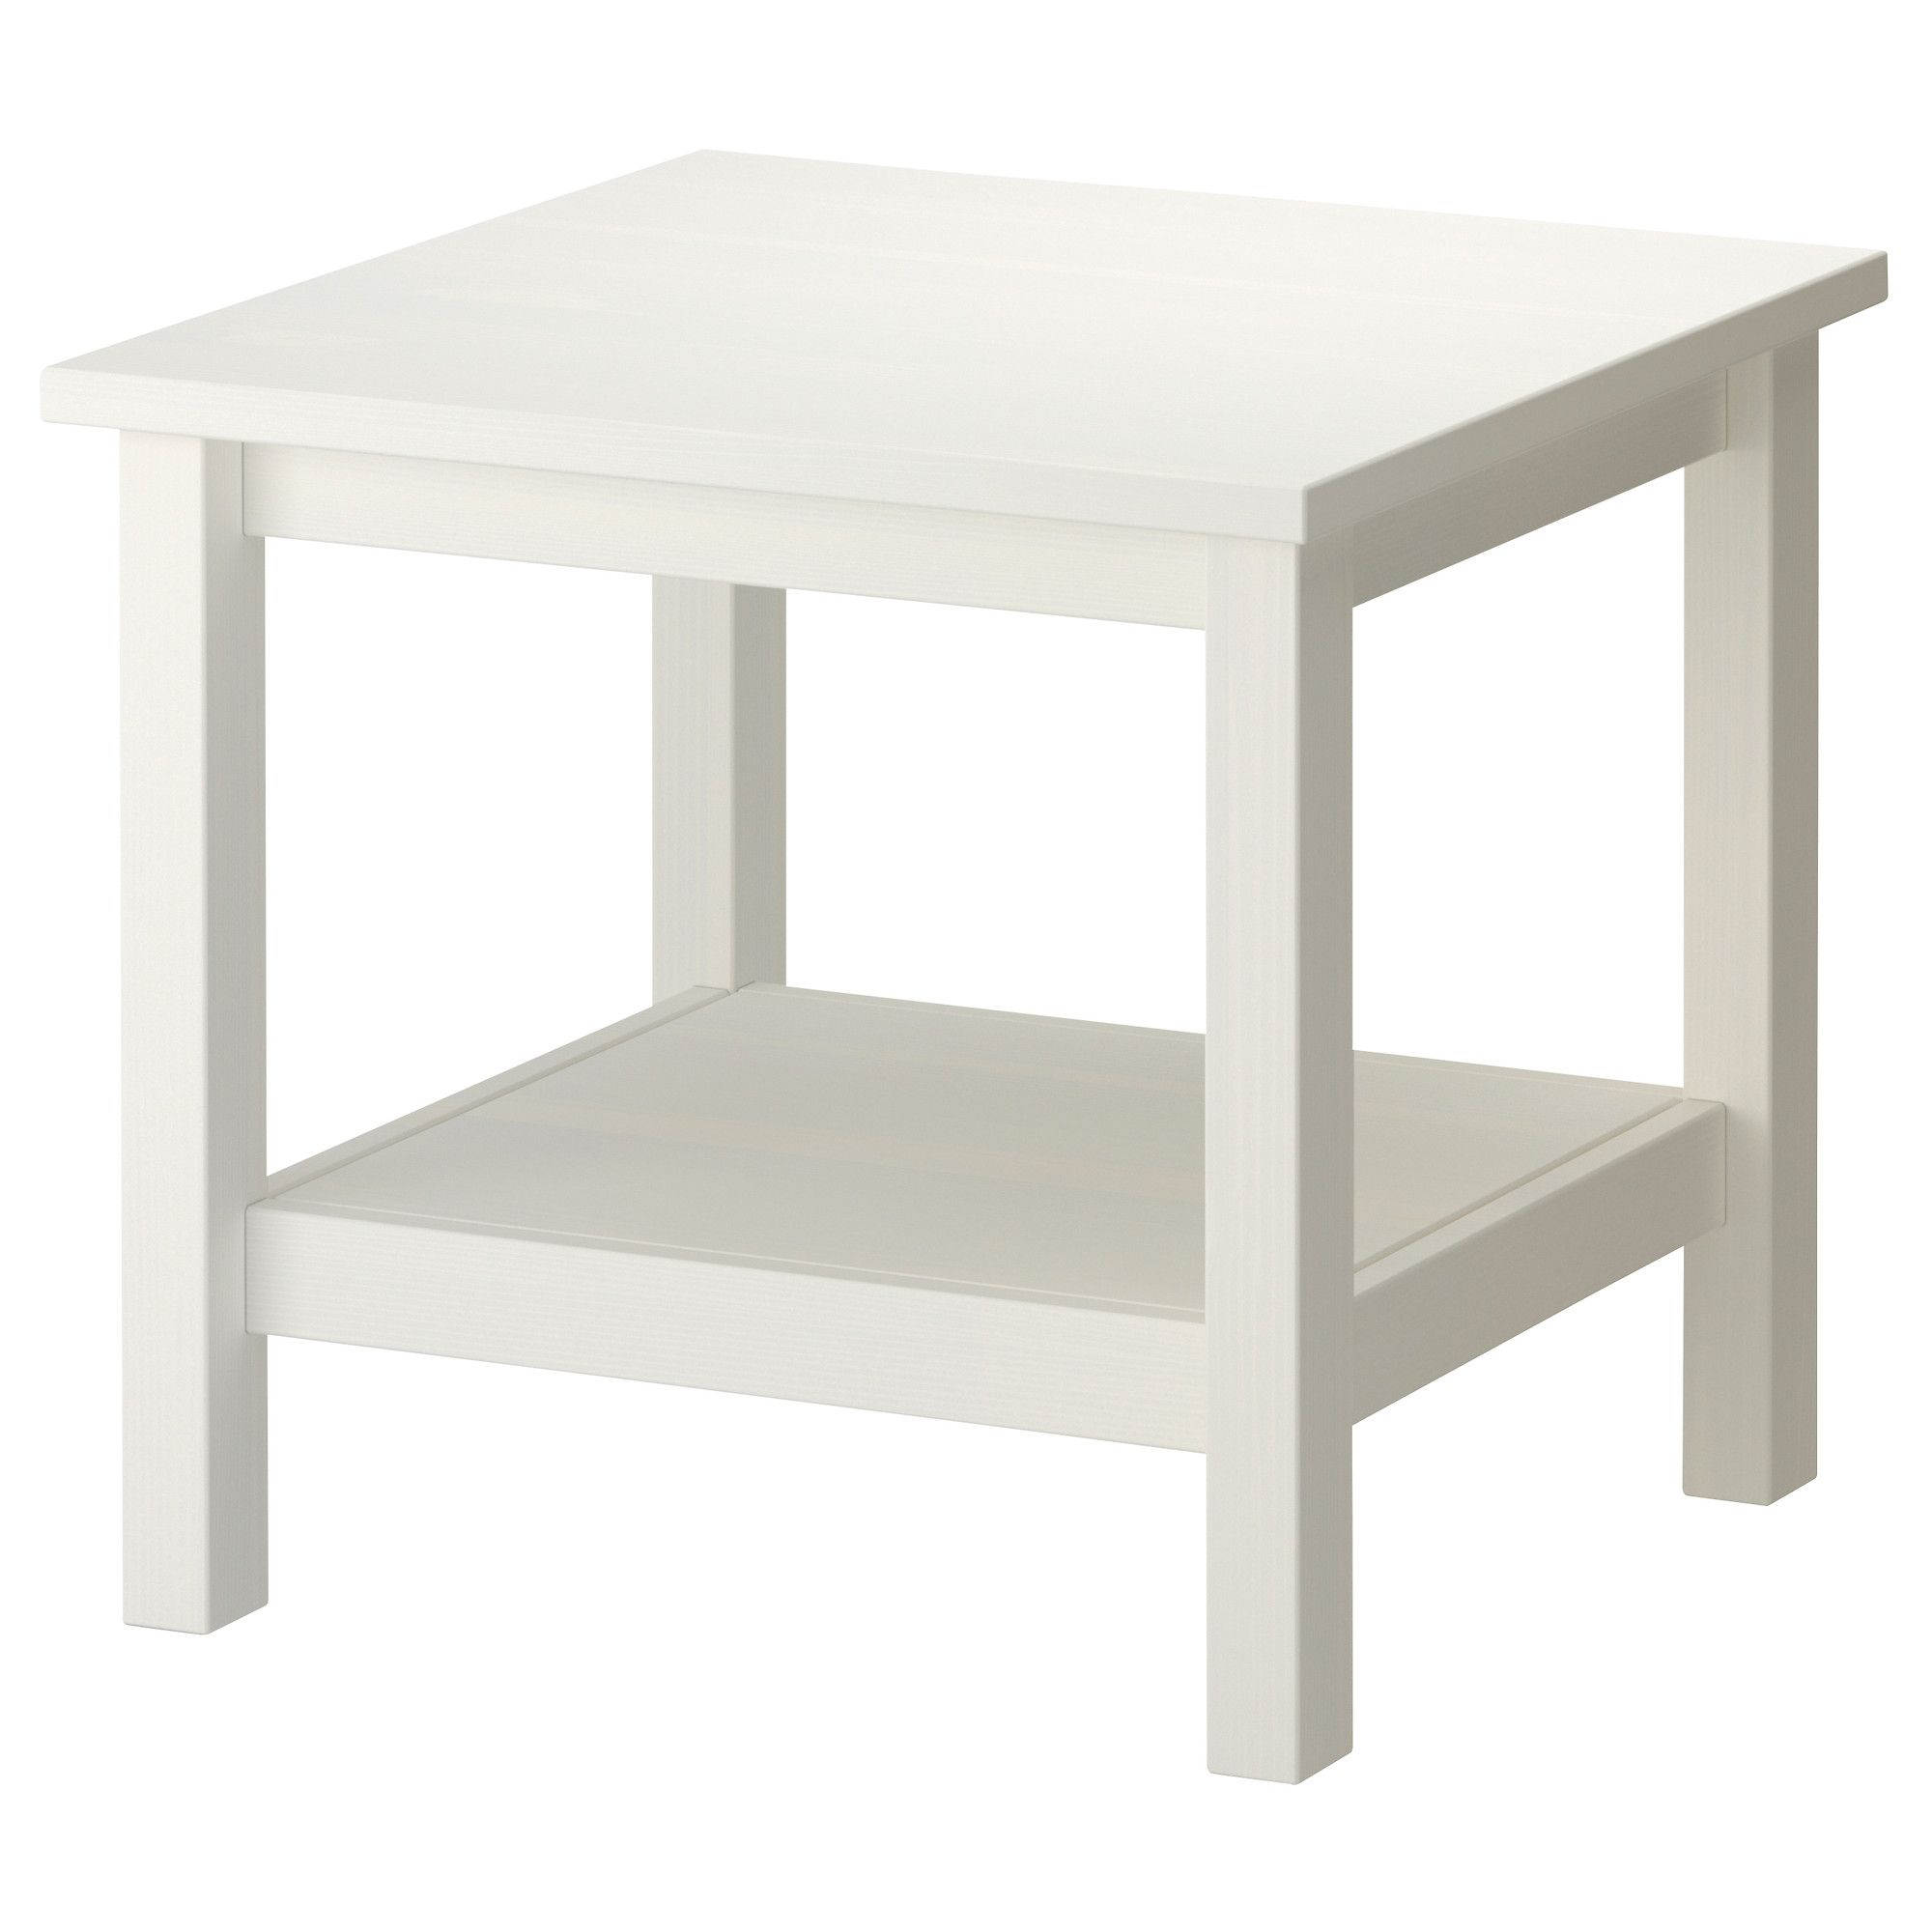 hemnes table duappoint teint blanc ikea with table roulante pliante ikea. Black Bedroom Furniture Sets. Home Design Ideas